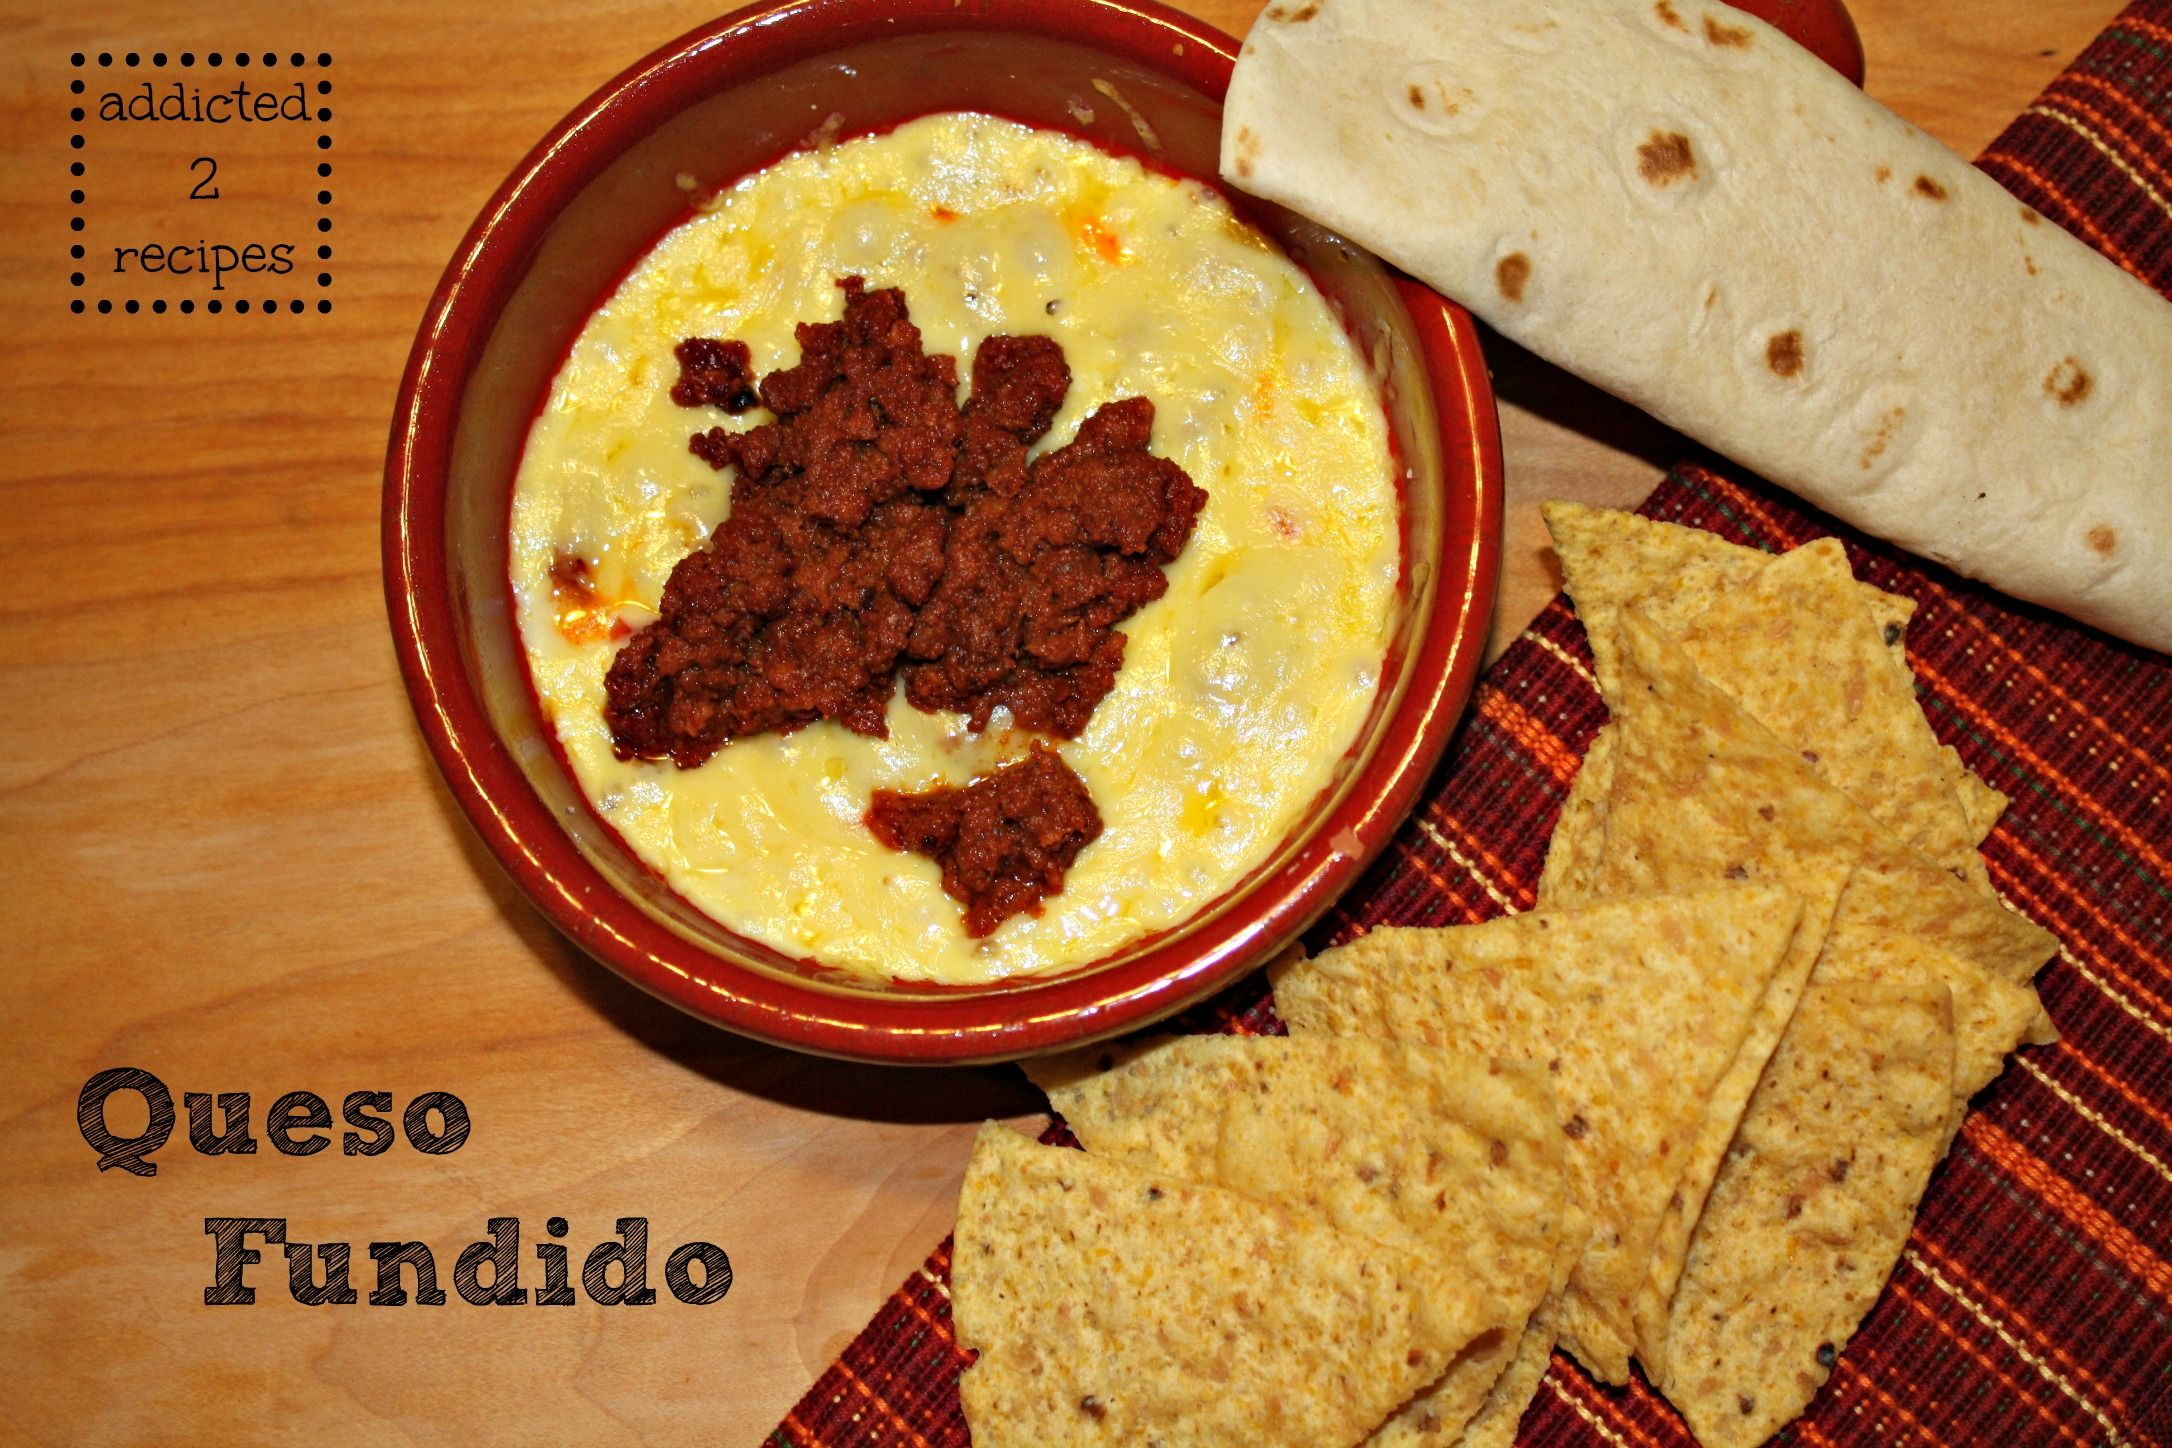 Chewy gooey goodness - Queso Fundido #AuténticoCheeseSociety, #CheeseSociety #ad